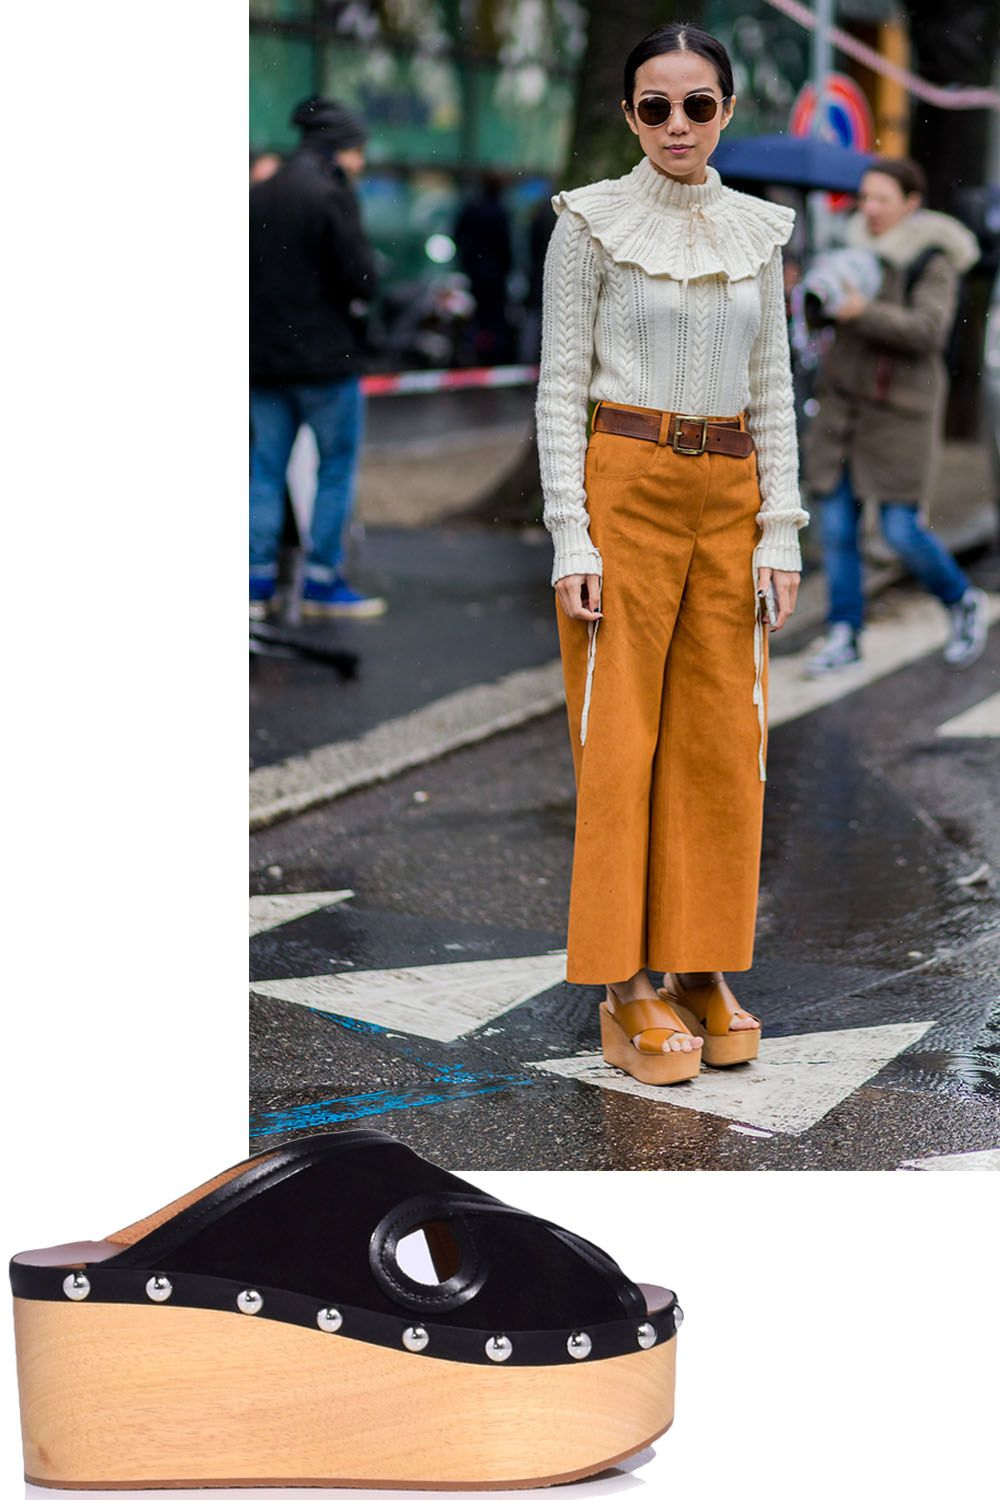 "<p>Pair with socks now, and a pedicure later. </p><p><em data-verified=""redactor"" data-redactor-tag=""em"">Isabel Marant shoes, $560, <a href=""https://shop.harpersbazaar.com/designers/isabel-marant/zipla-clog-slide-in-black-11307.html"" data-tracking-id=""recirc-text-link"">shopBAZAAR.com</a>. </em></p>"